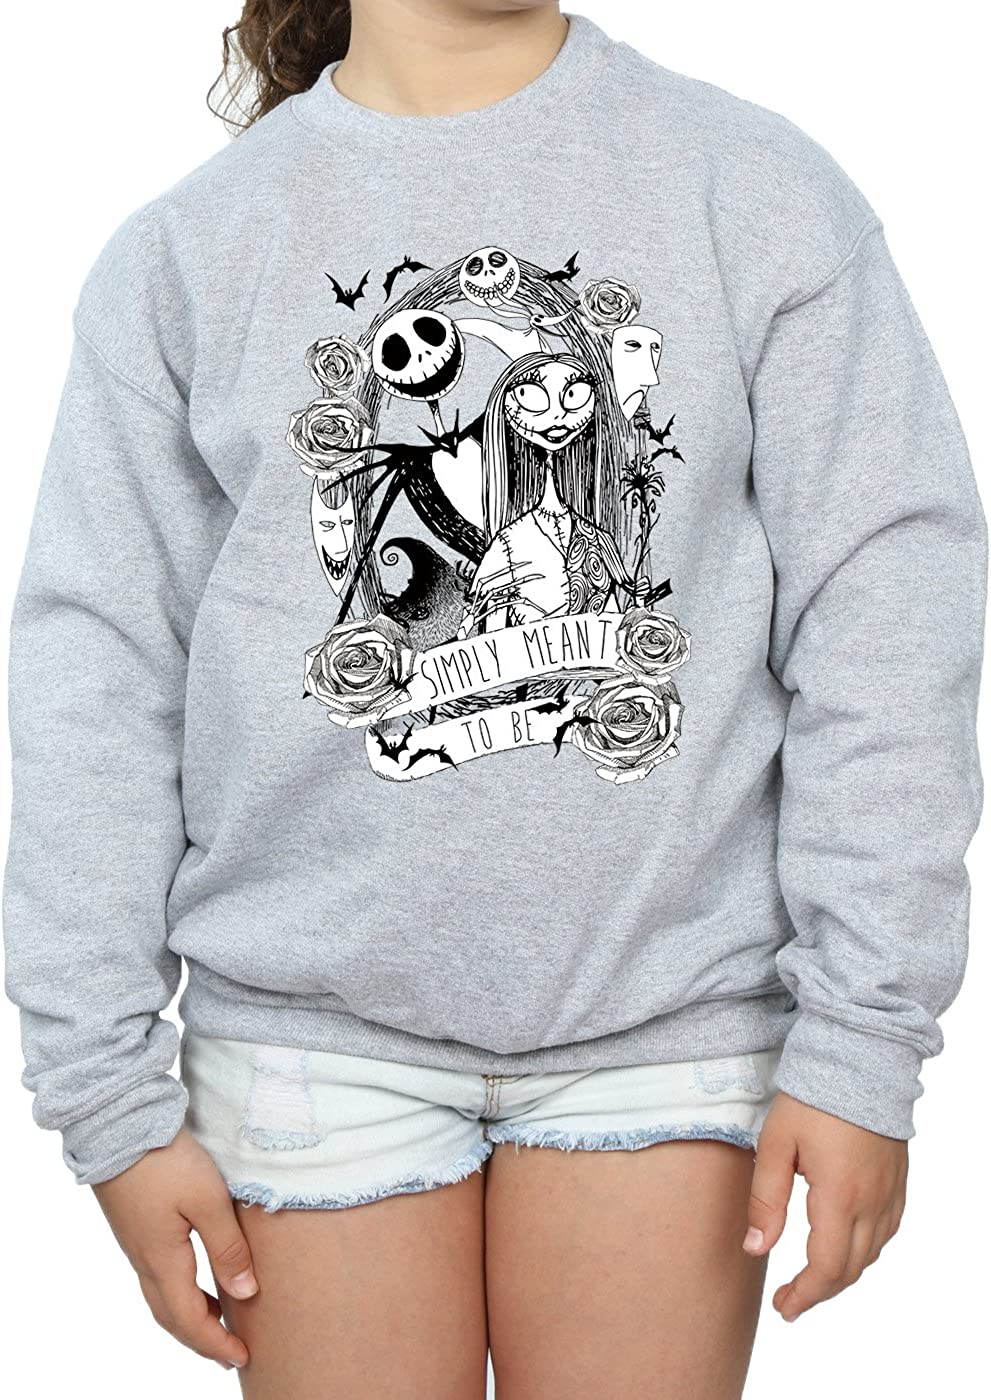 Disney M/ädchen Nightmare Before Christmas Simply Meant To Be Sweatshirt